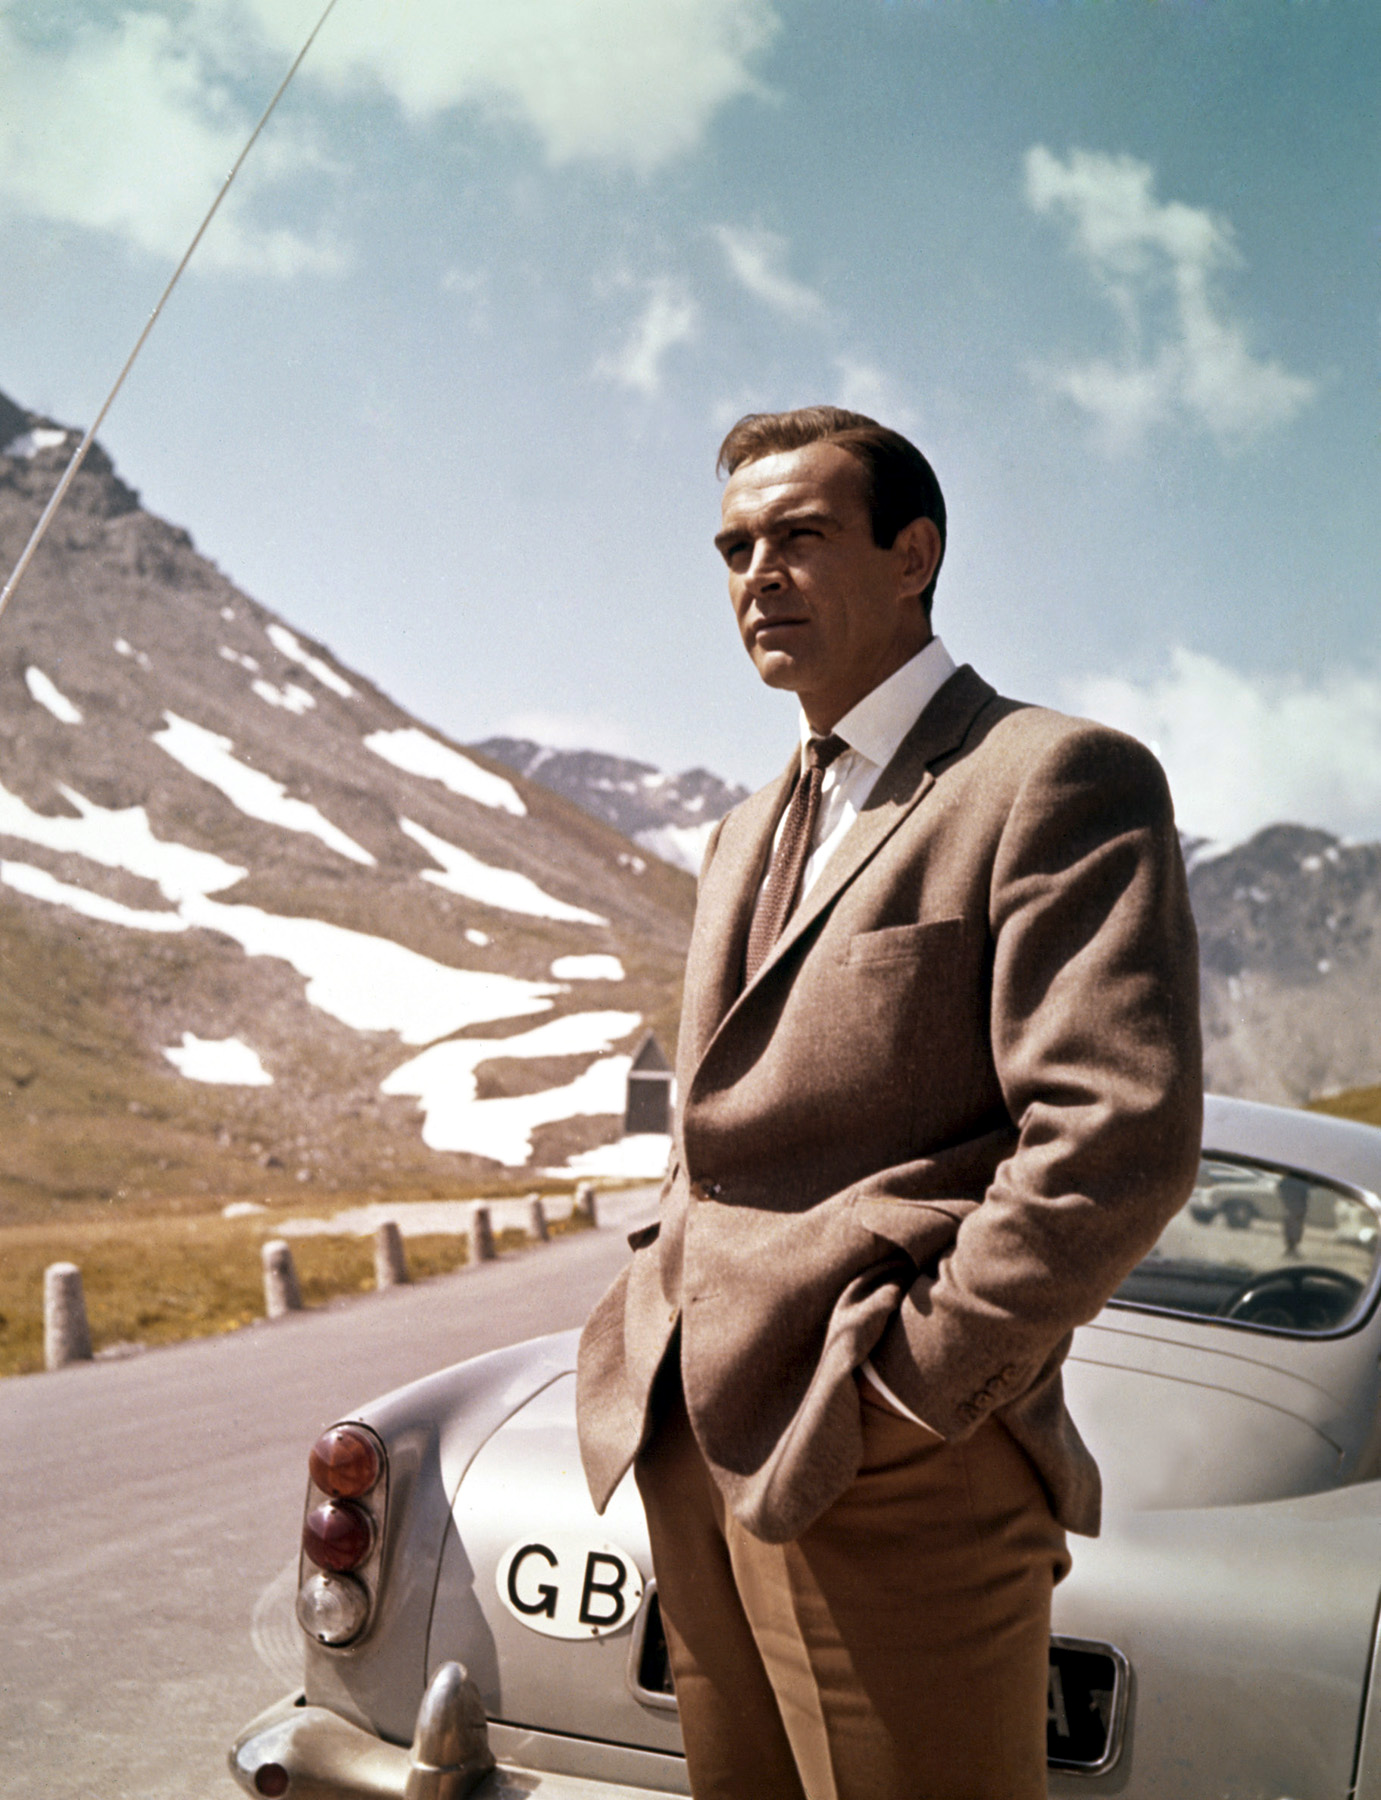 Sean Connery And the DB5 in Goldfinger